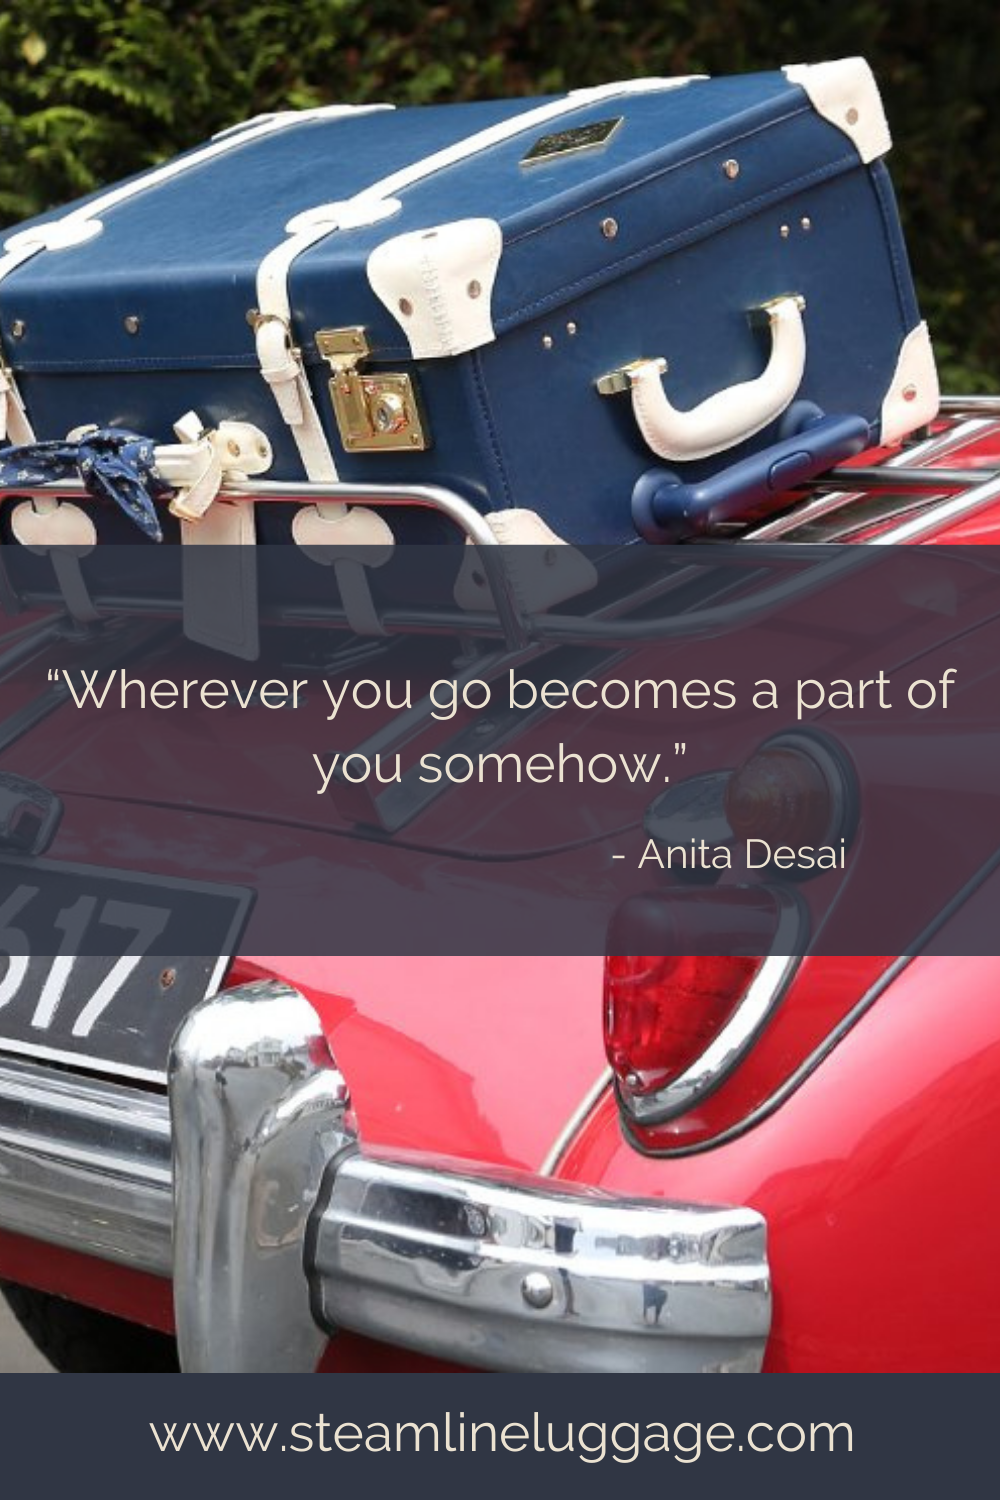 Anita Desai Quote | Words about Life | Best Literary Quotes About Travel | Wanderlust Quotes